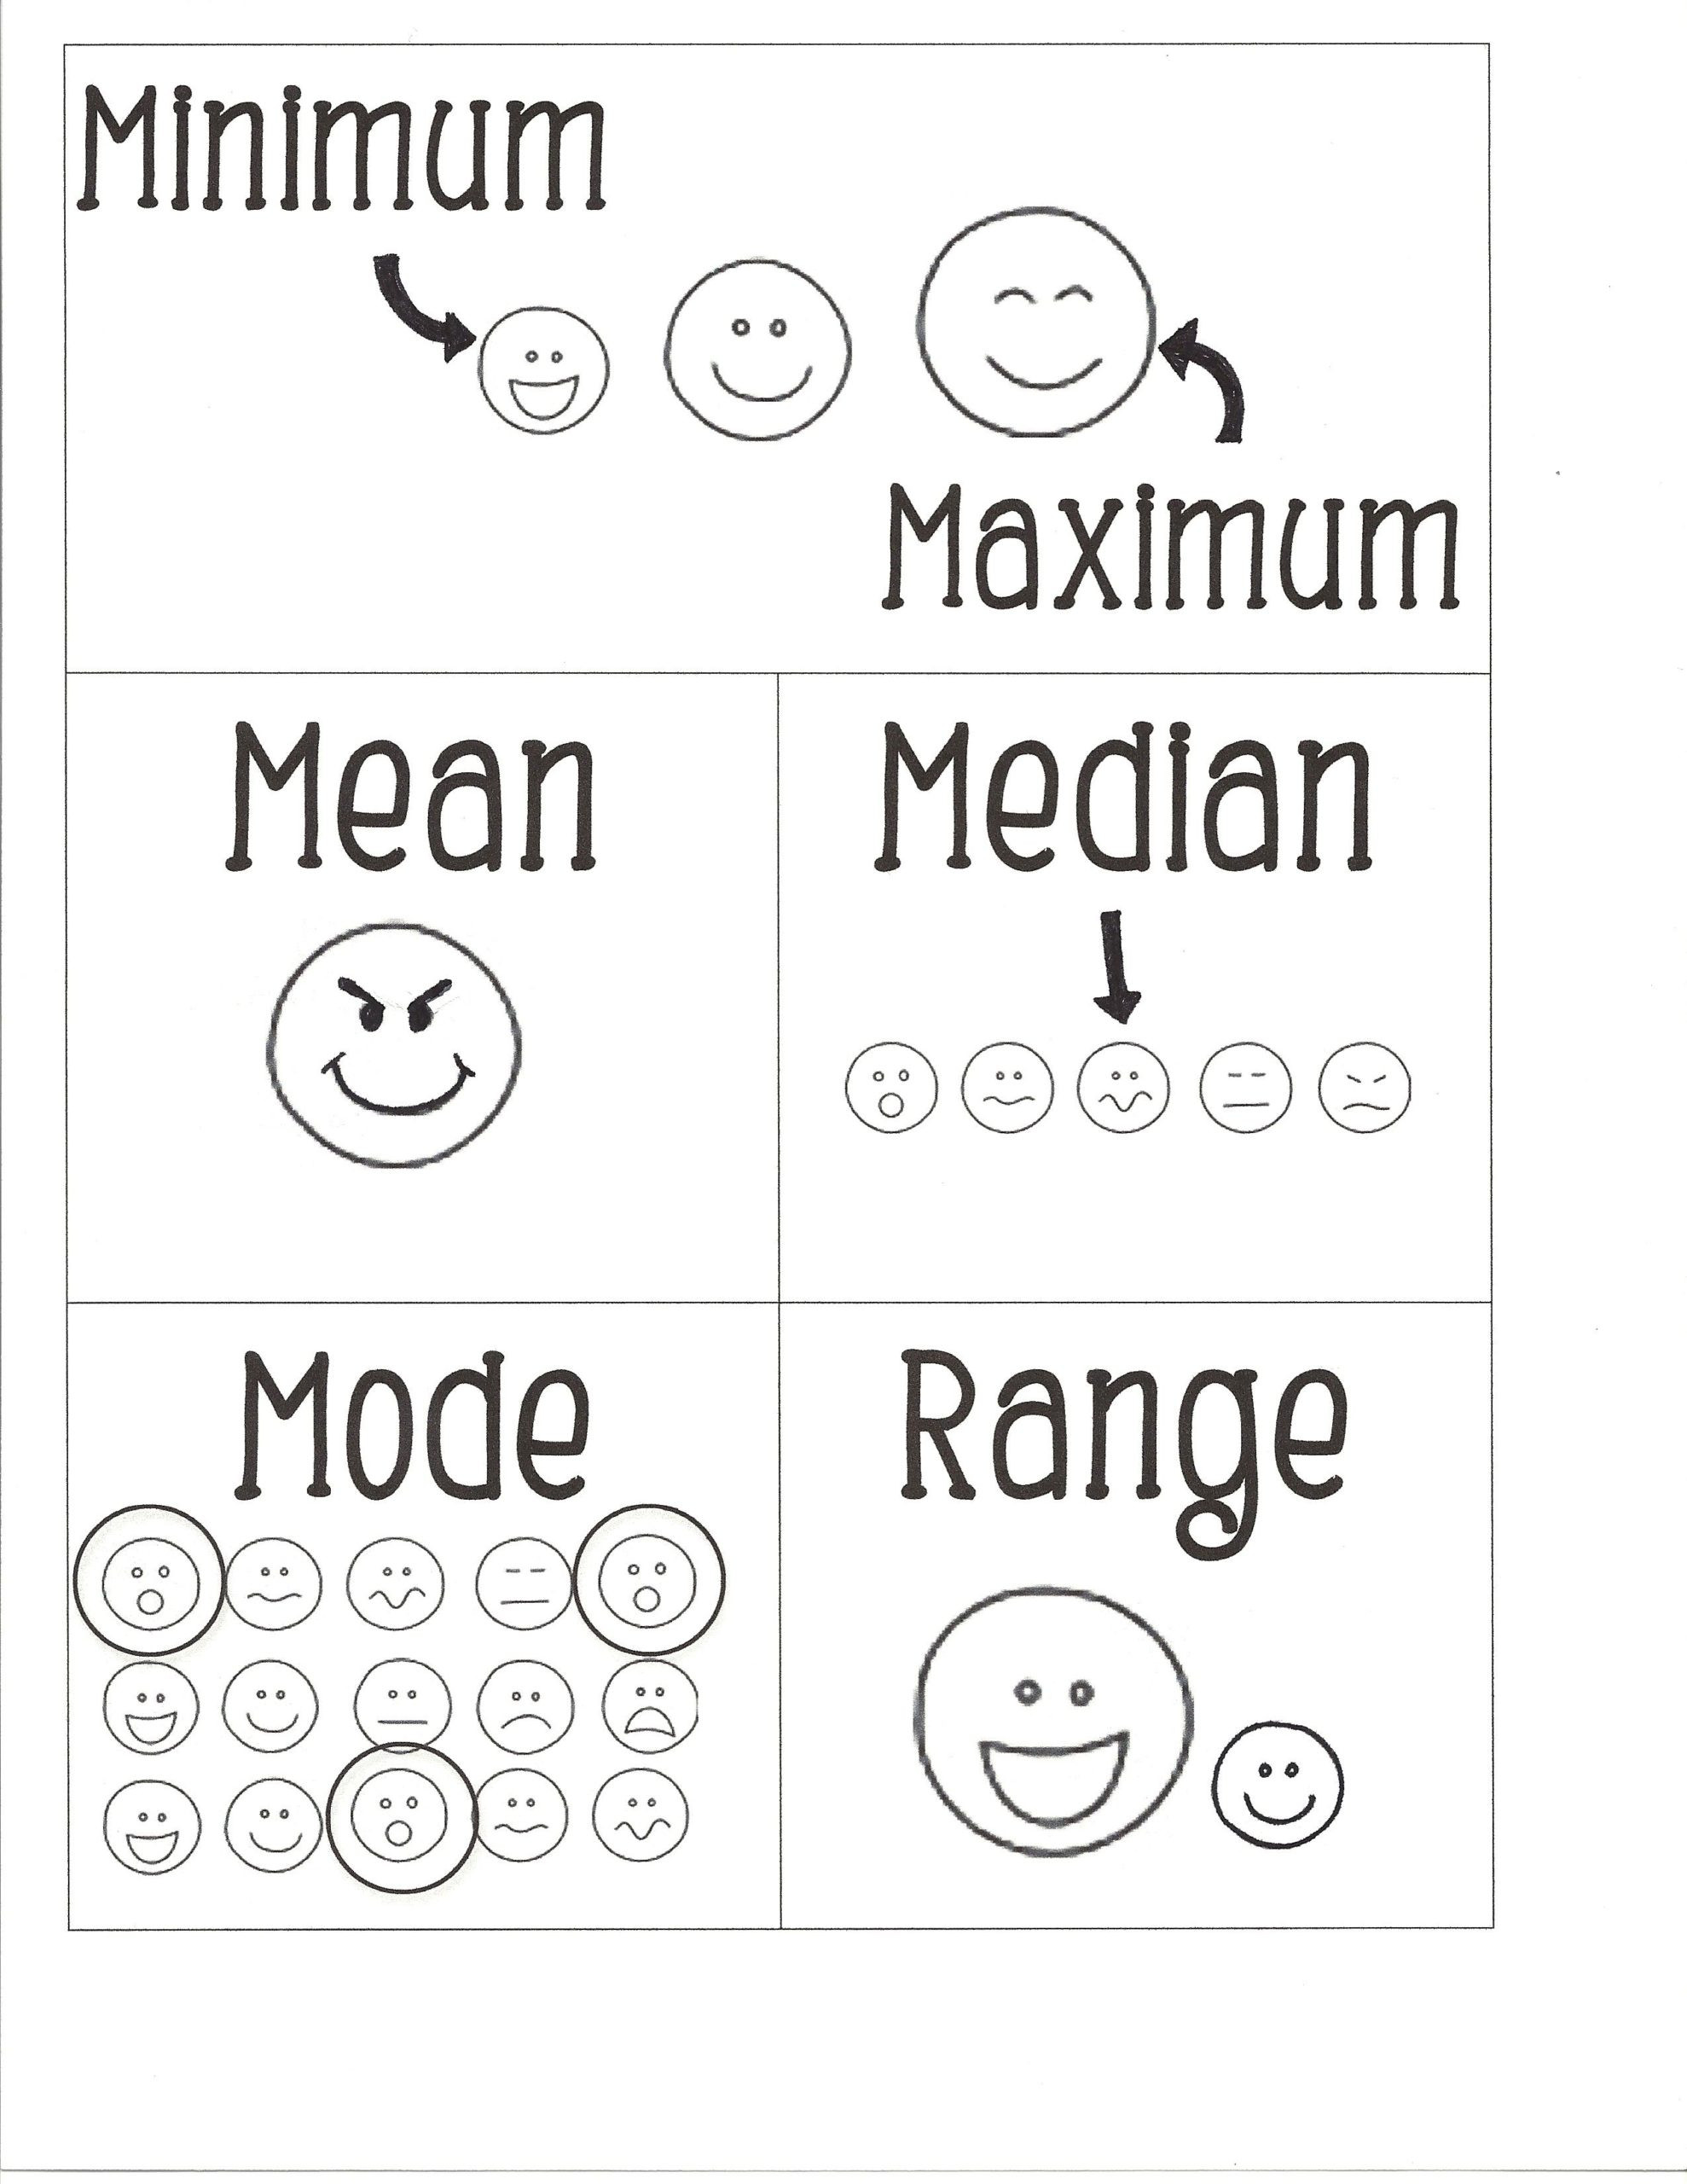 2nd Grade Pictograph Worksheets Middle School Minimum Maximum Mean Median Mode Range